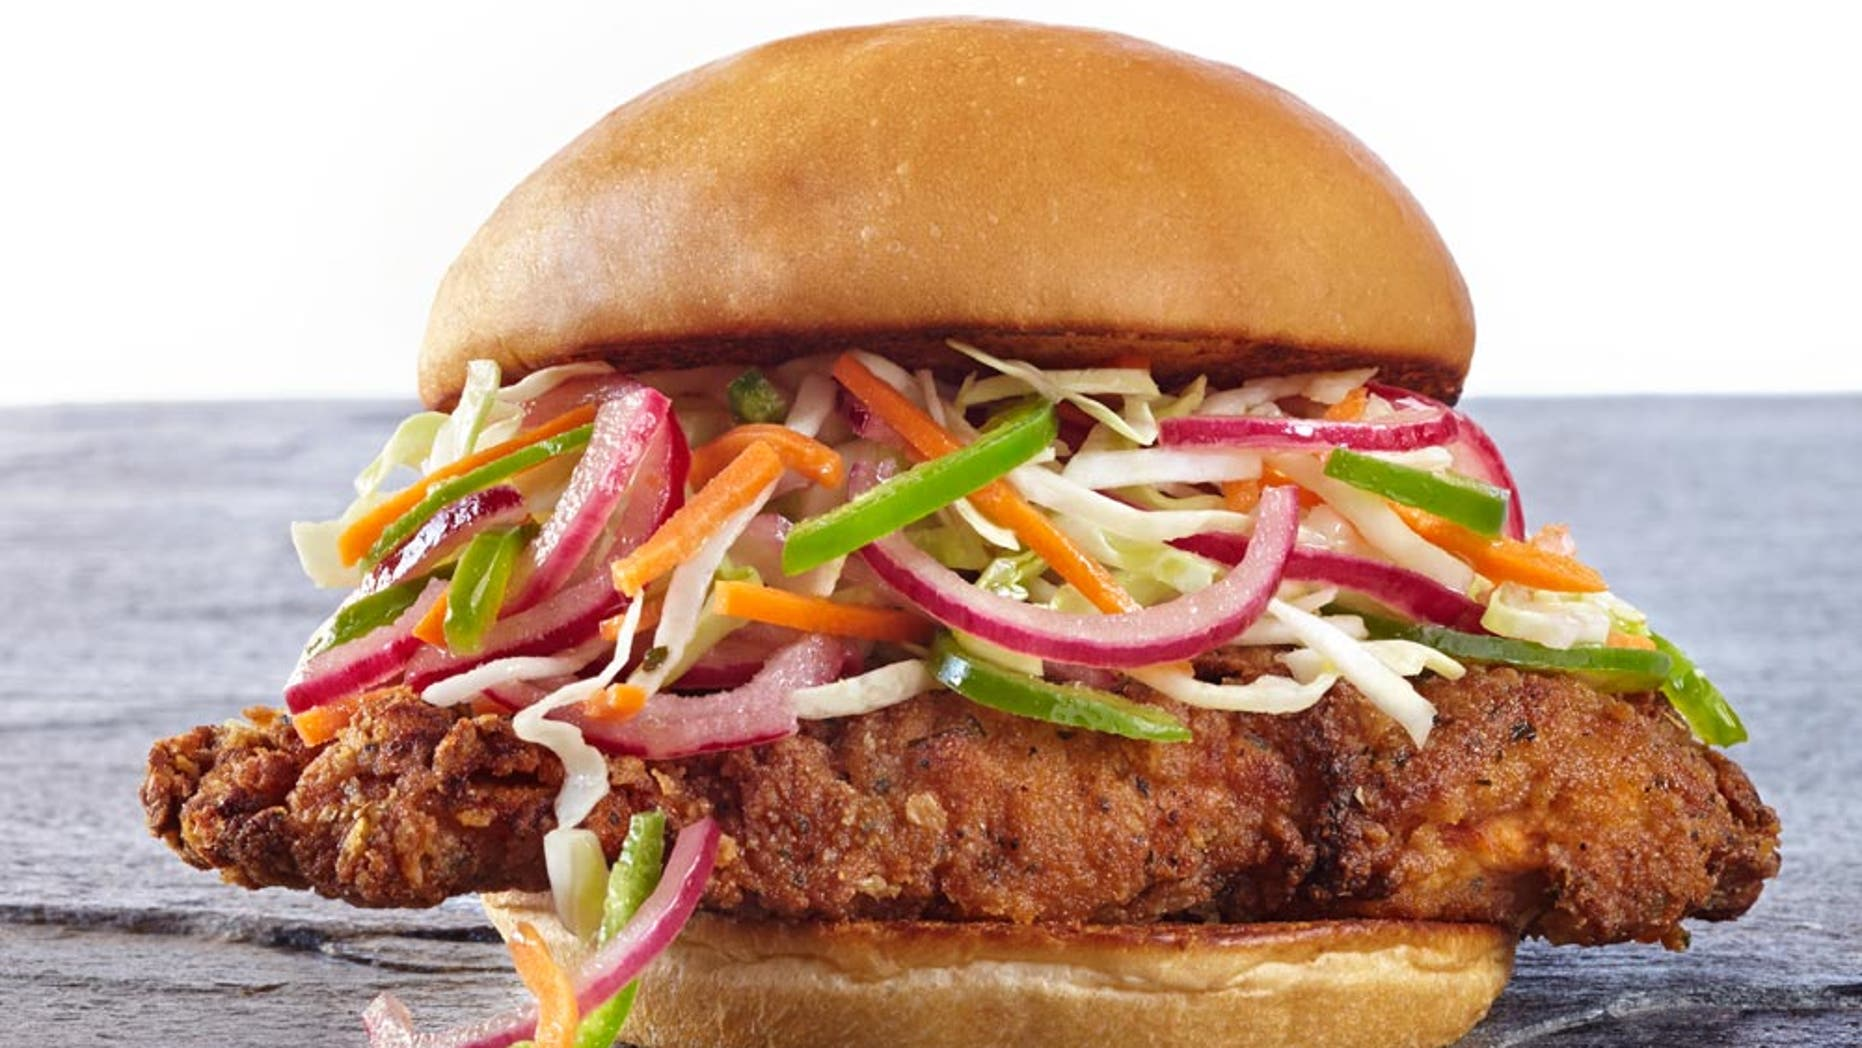 The spicy chicken sandwich is the signature menu item at the country first USDA-organic certified fast food joint.